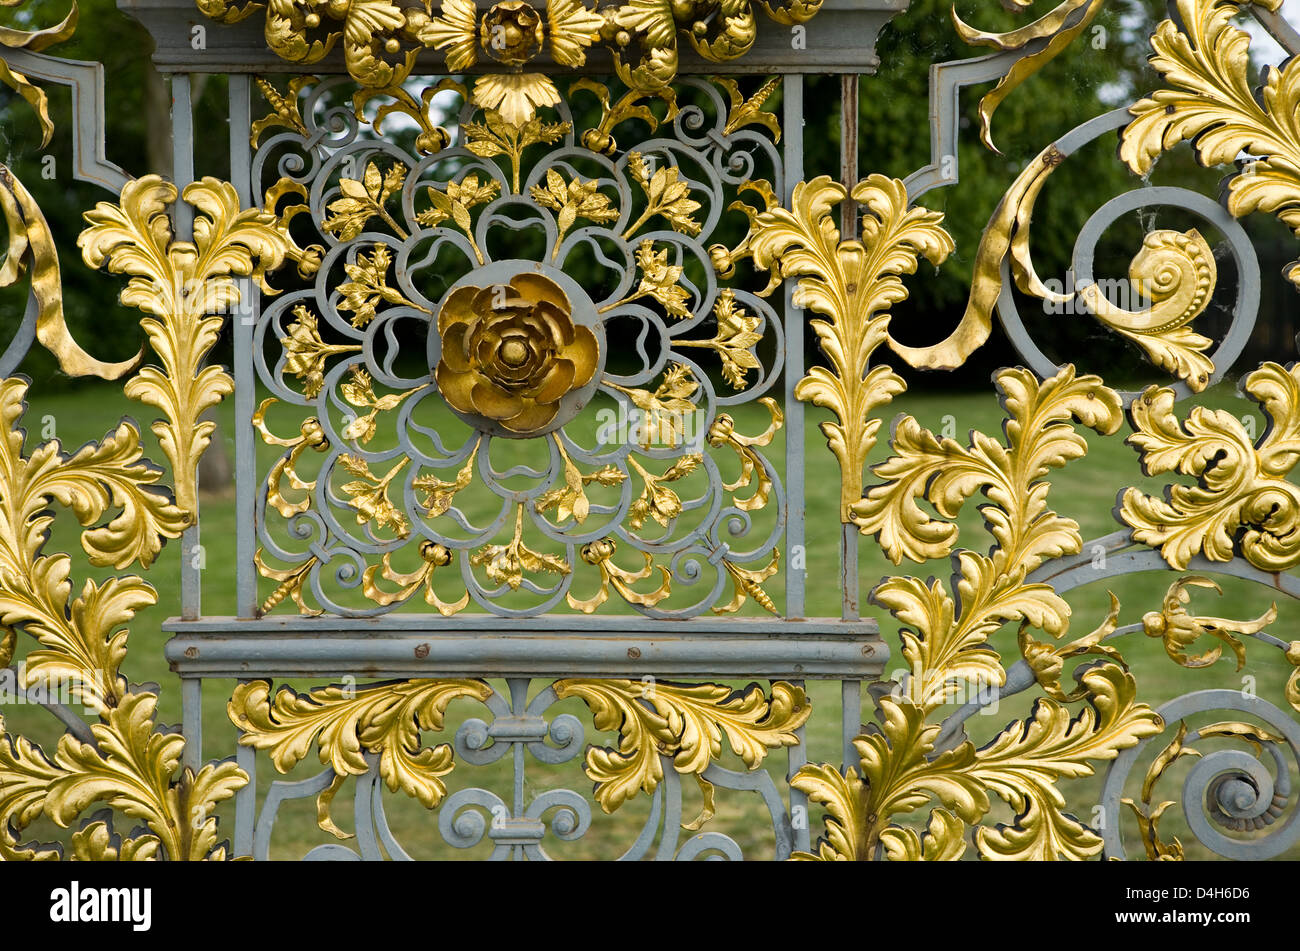 Decorative Wrought Iron Screen By Jean Tijou, Part Of Fence Around The  Privy Garden, Hampton Court Palace, Surrey, England